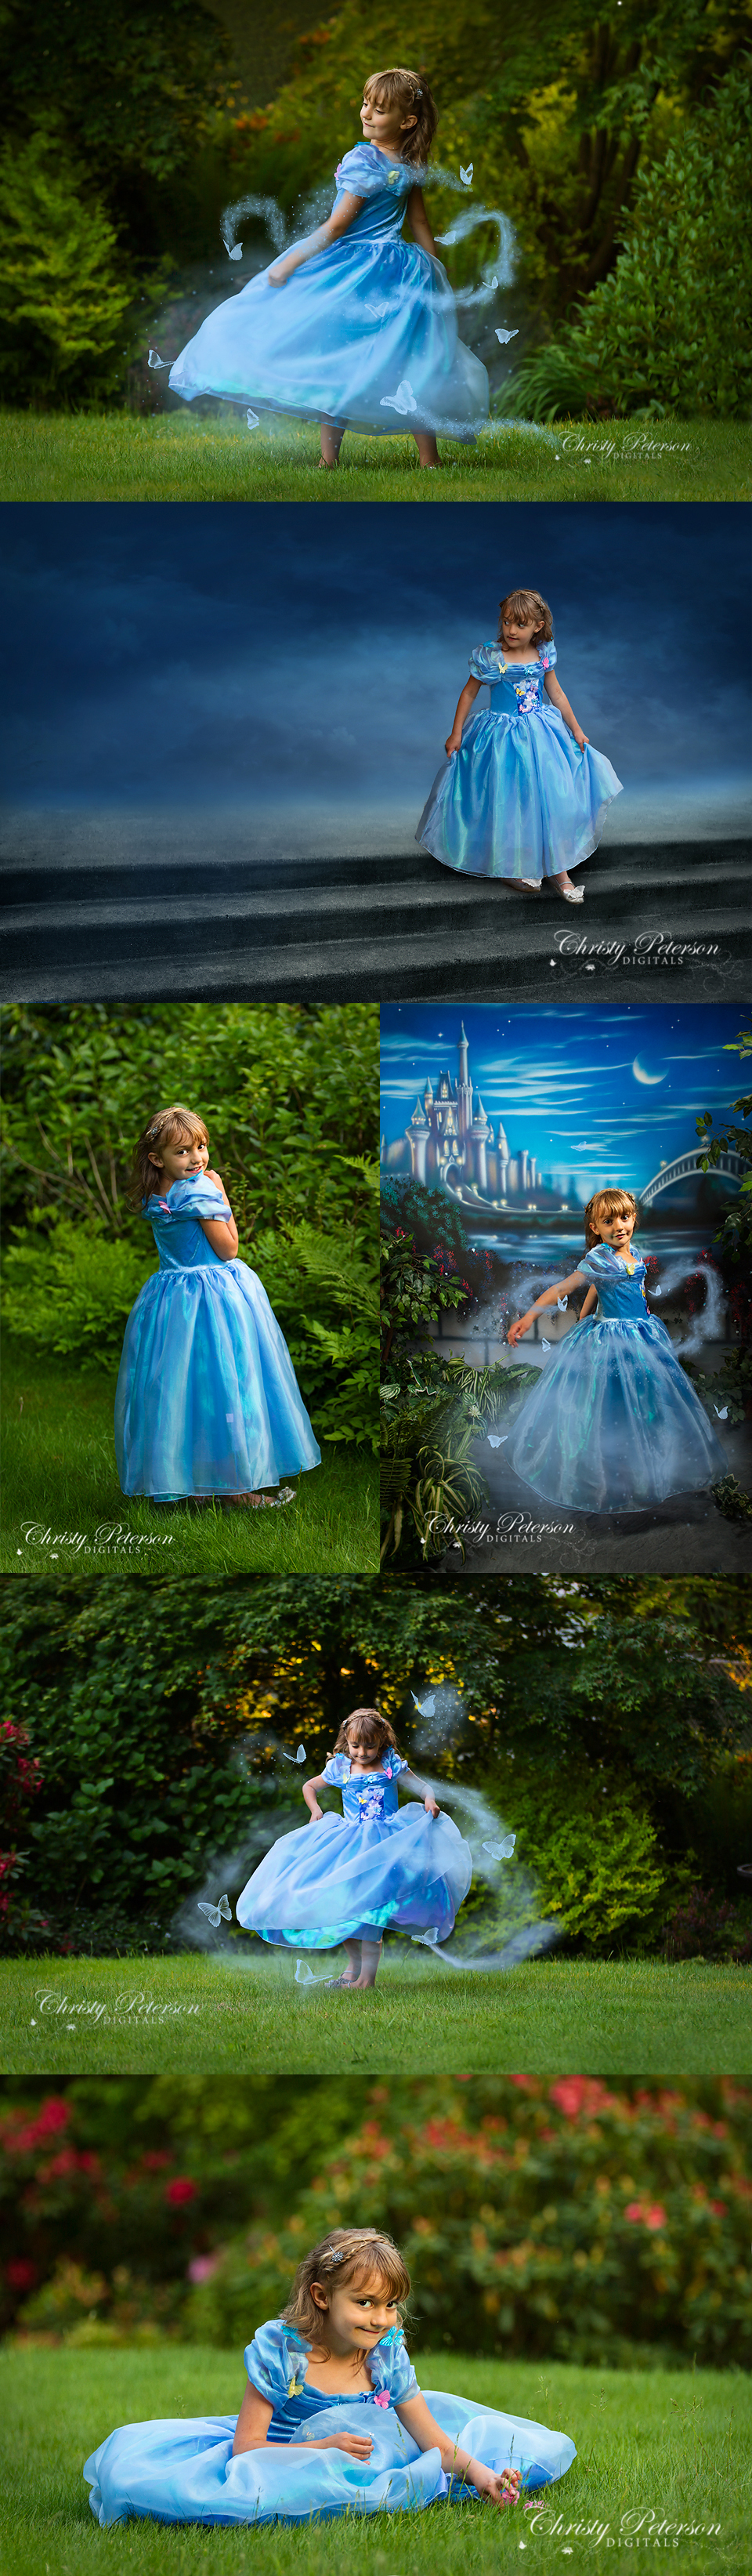 cinderella_photography_session_new_movie_magical_overlays